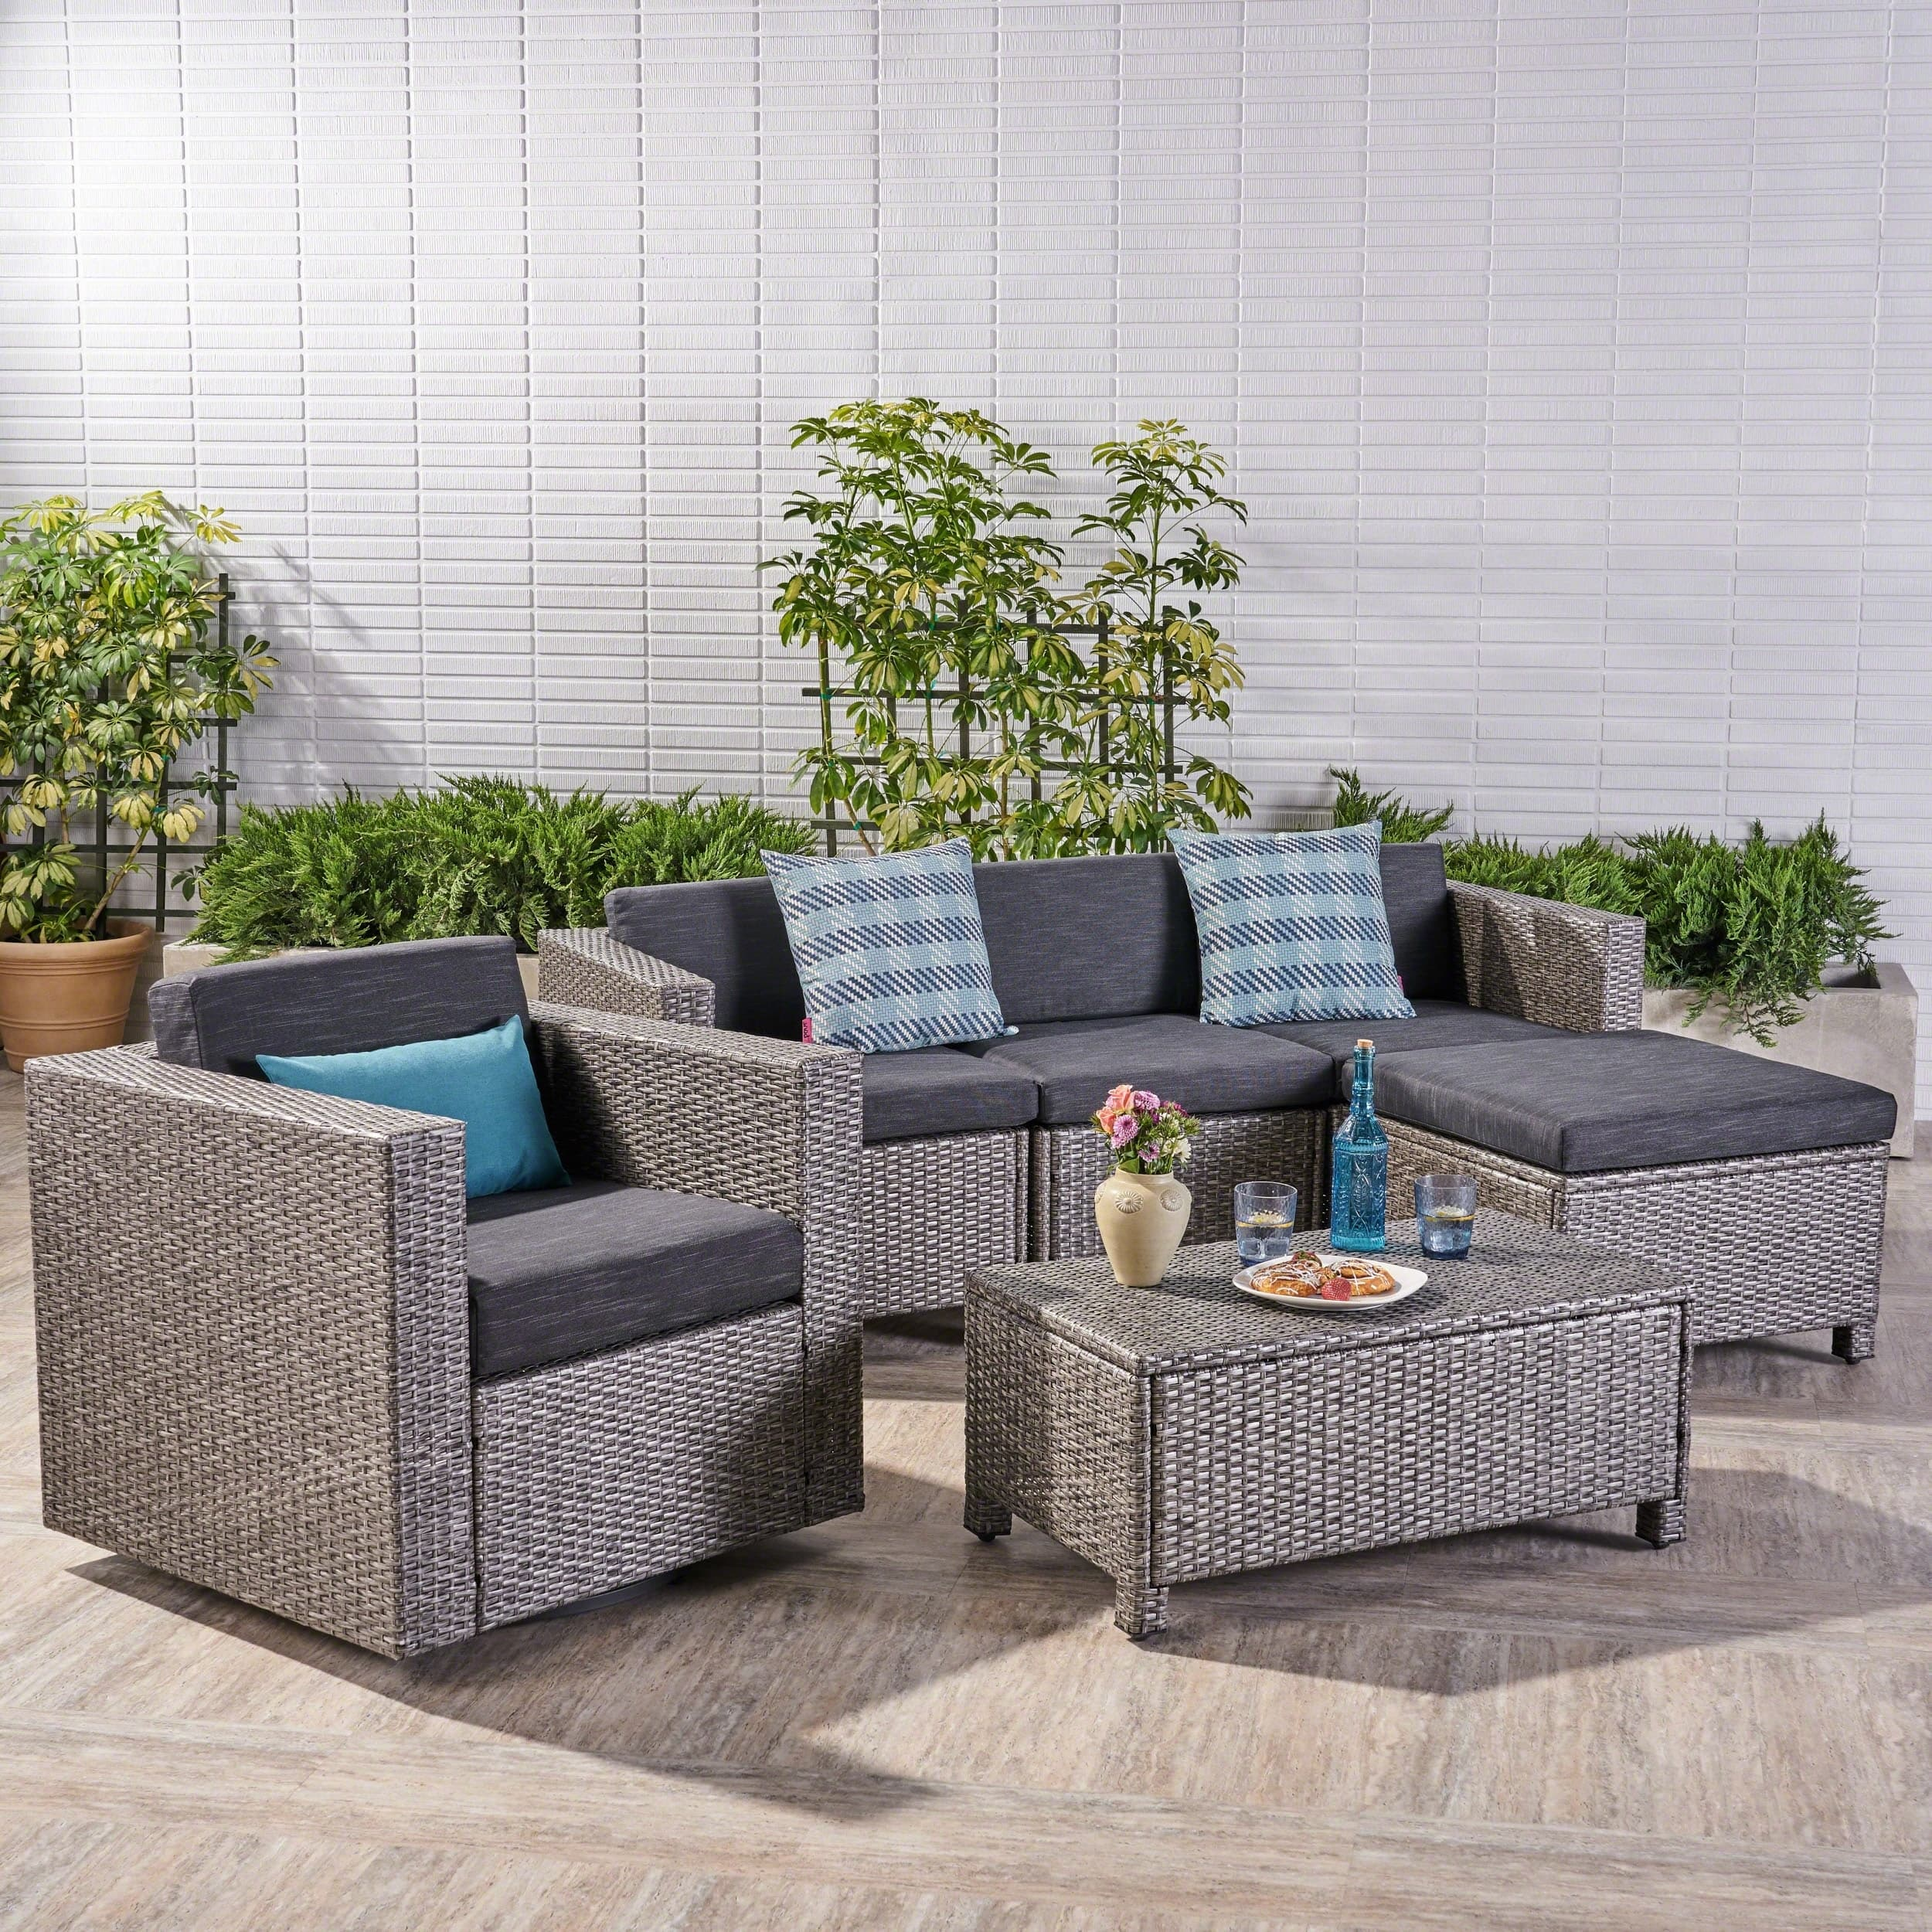 Christopher Knight Home Puerta Outdoor 4 Seater L-Shaped Sofa Set with Cushions by